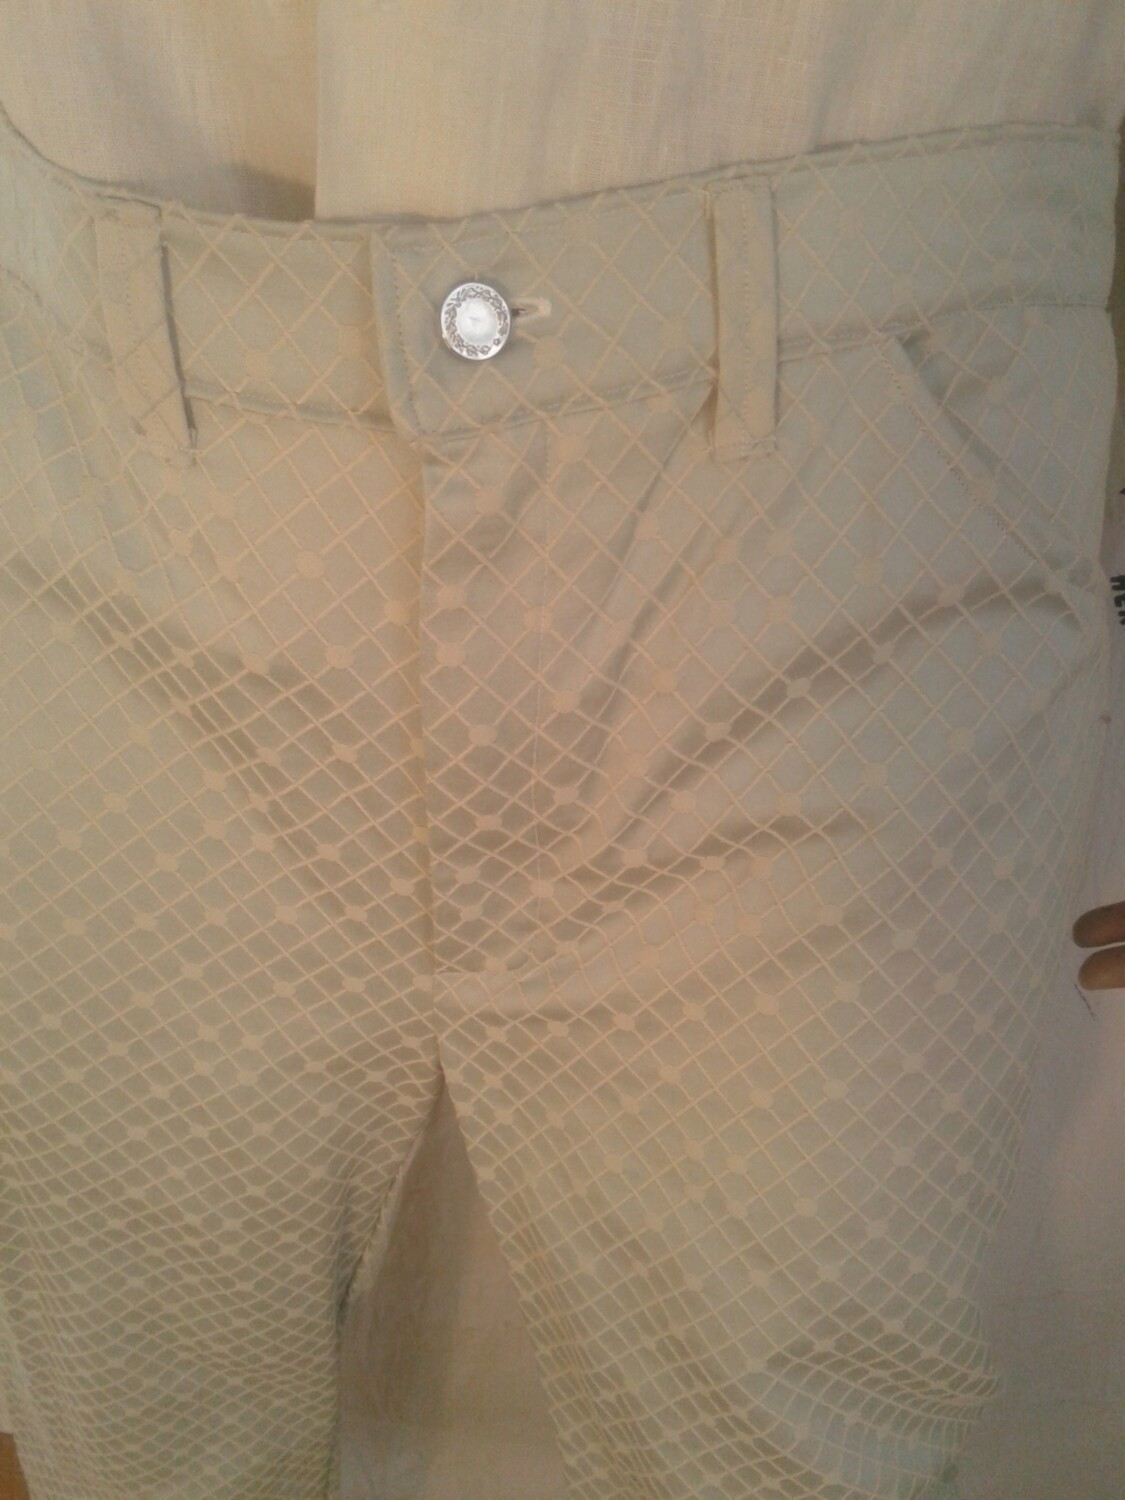 Hermans Jeans made in USA satin check 36 x 31